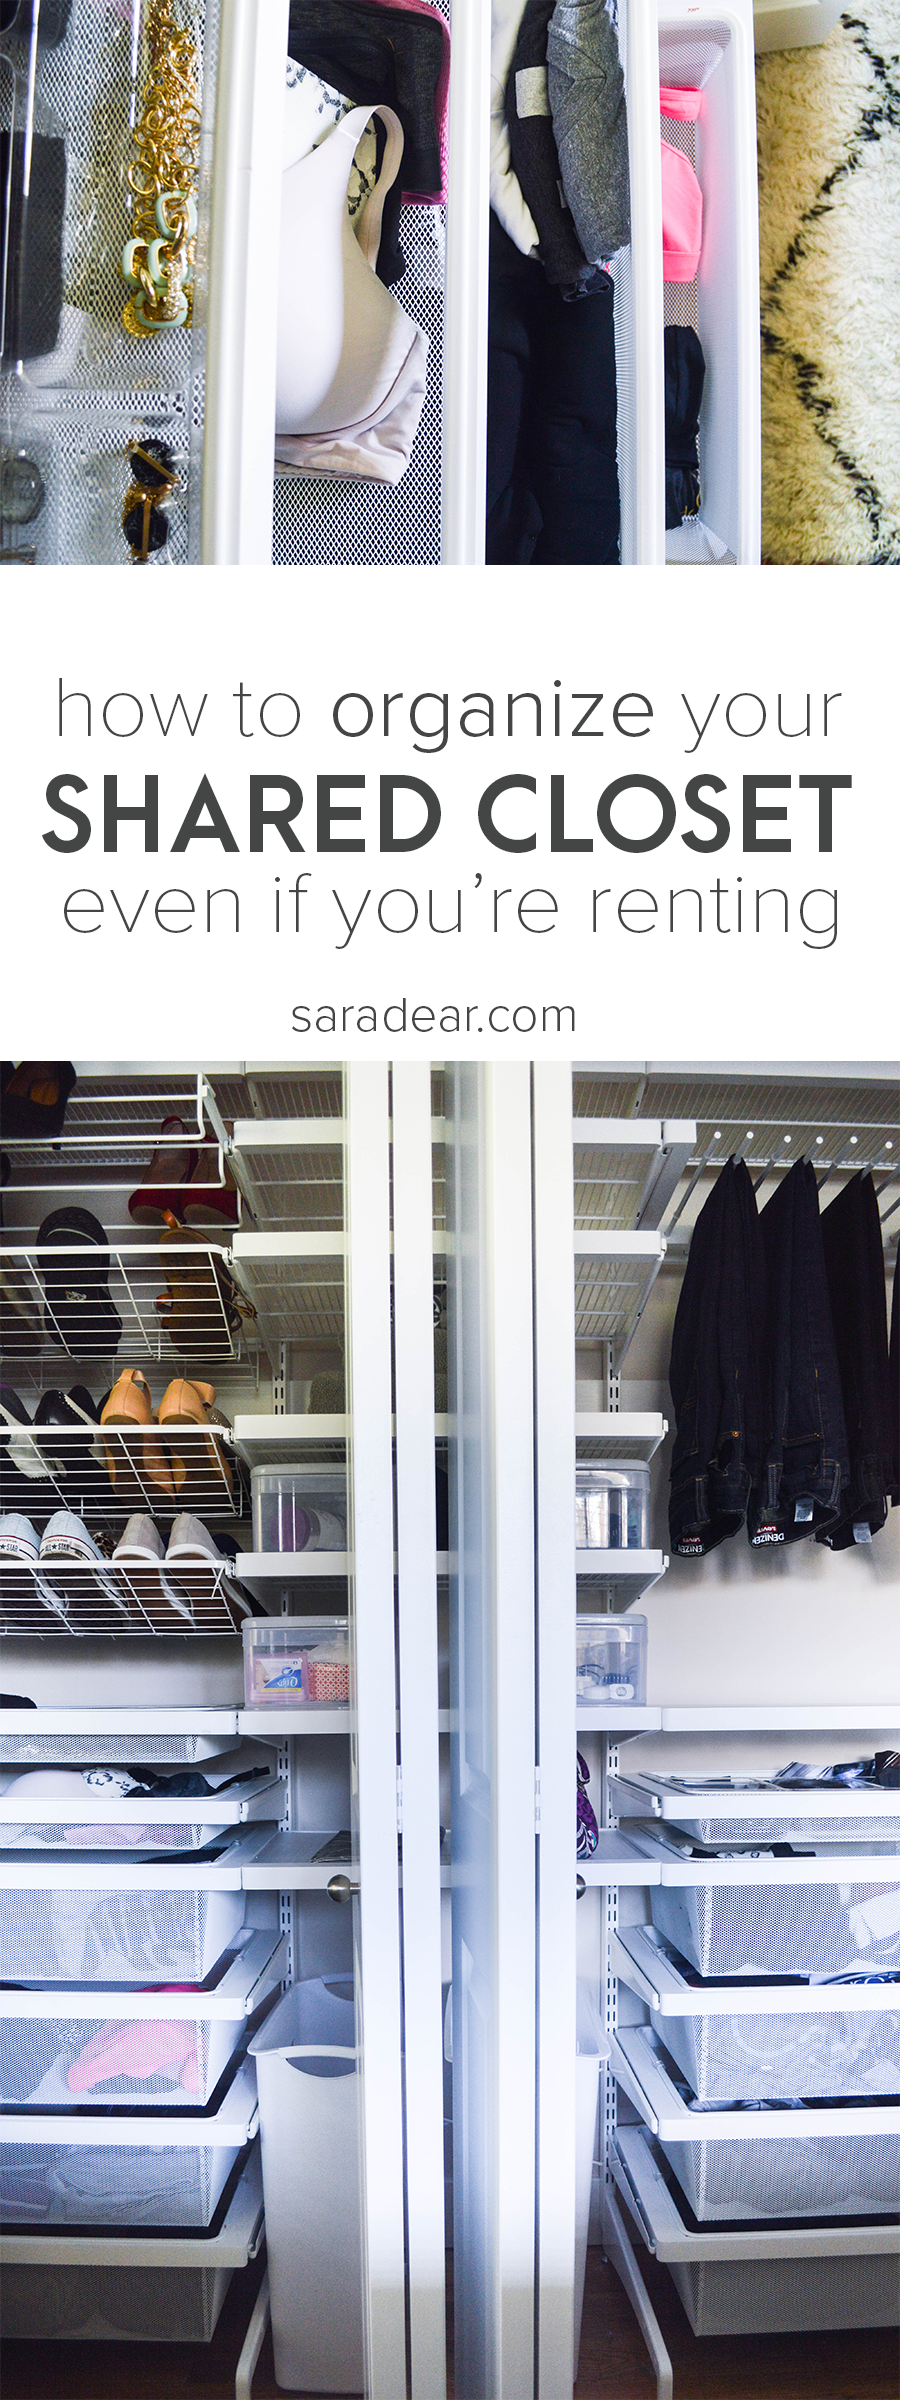 how to organize a shared closet renting.png